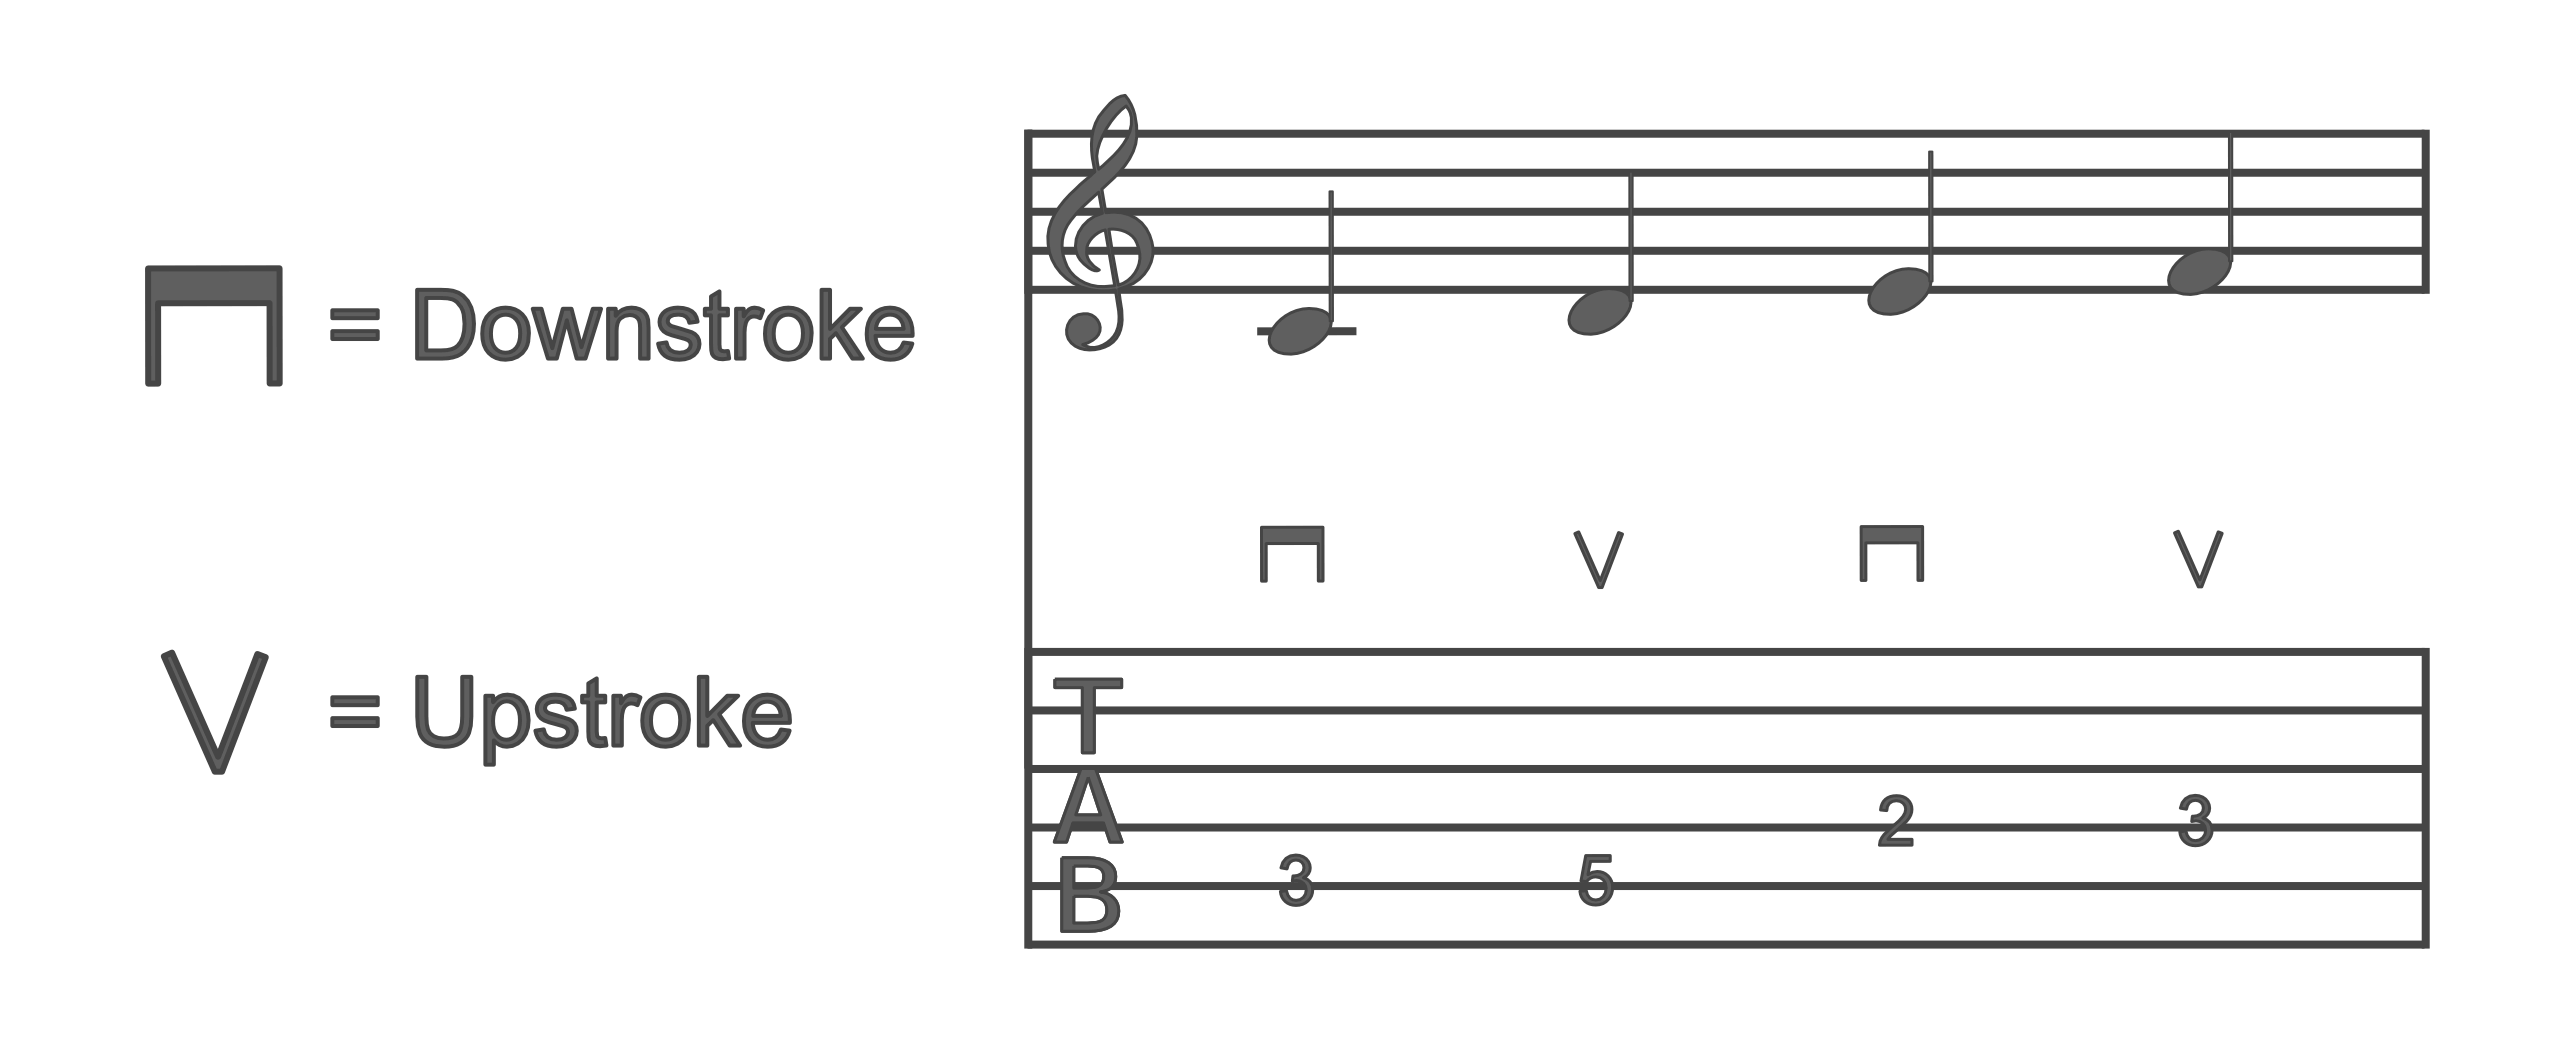 Tab Downstrokes & Upstrokes